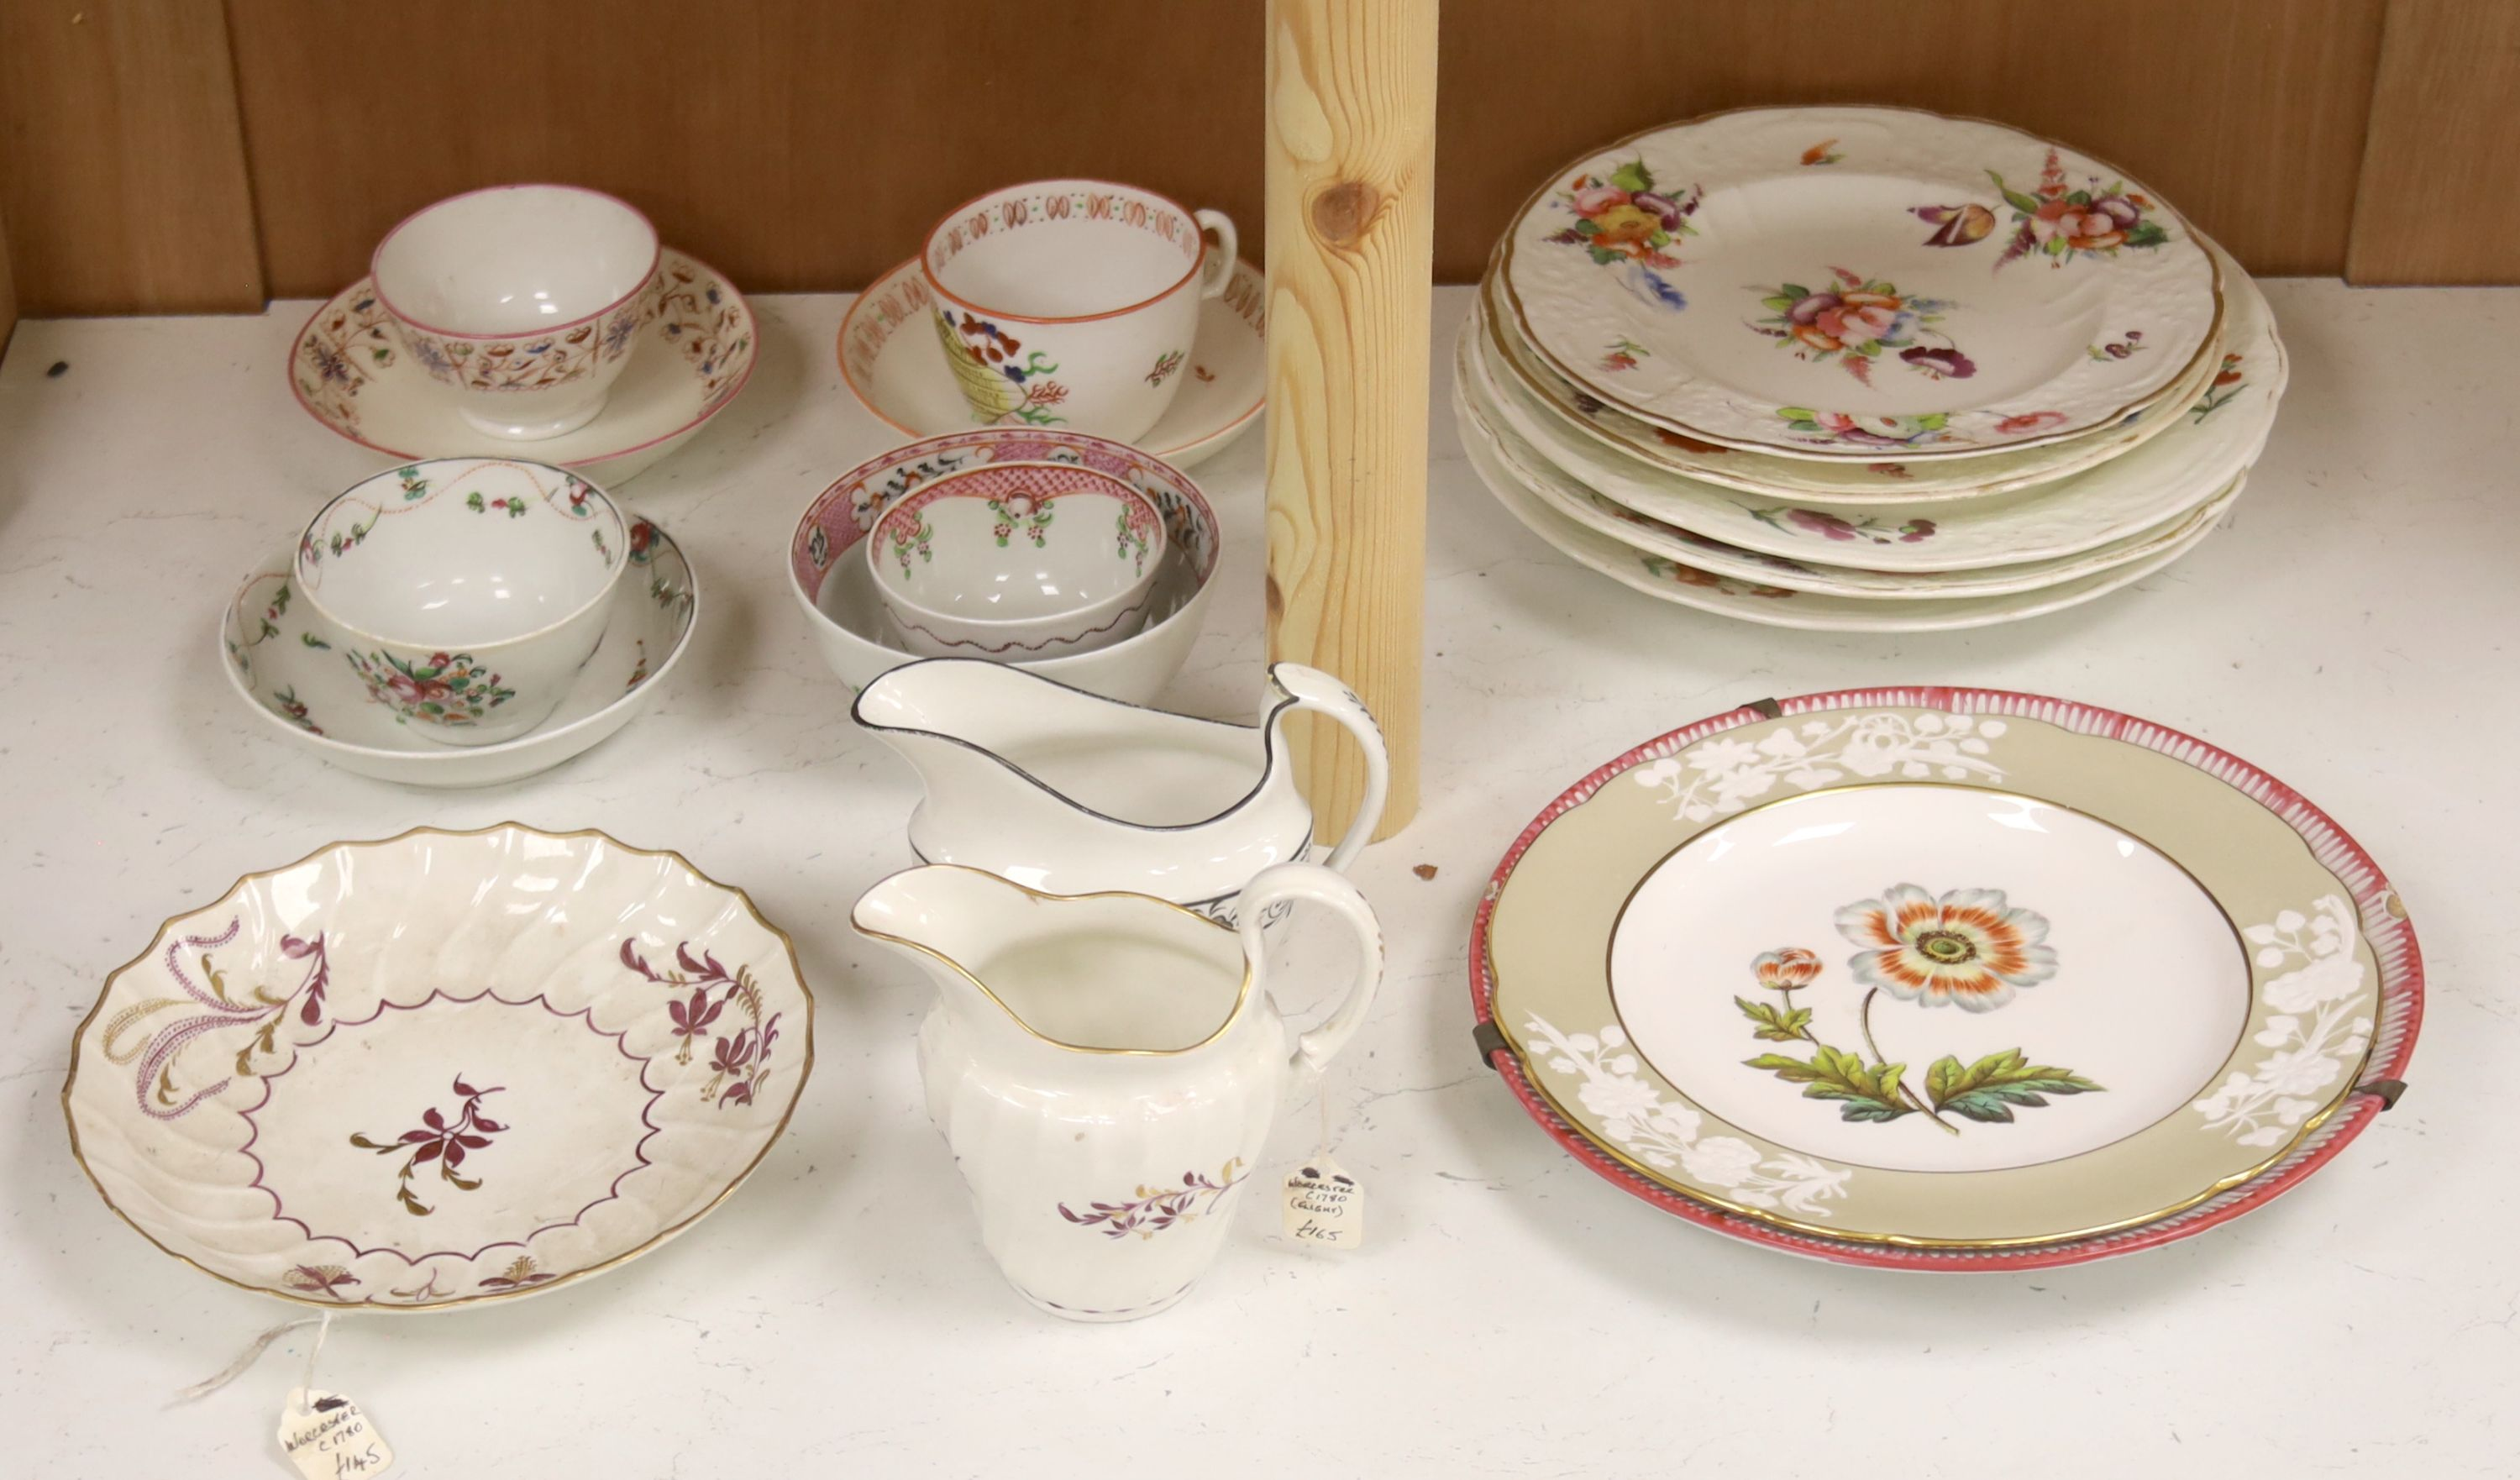 A group of late 18th / early 19th century English porcelain teaware and plates,together with a